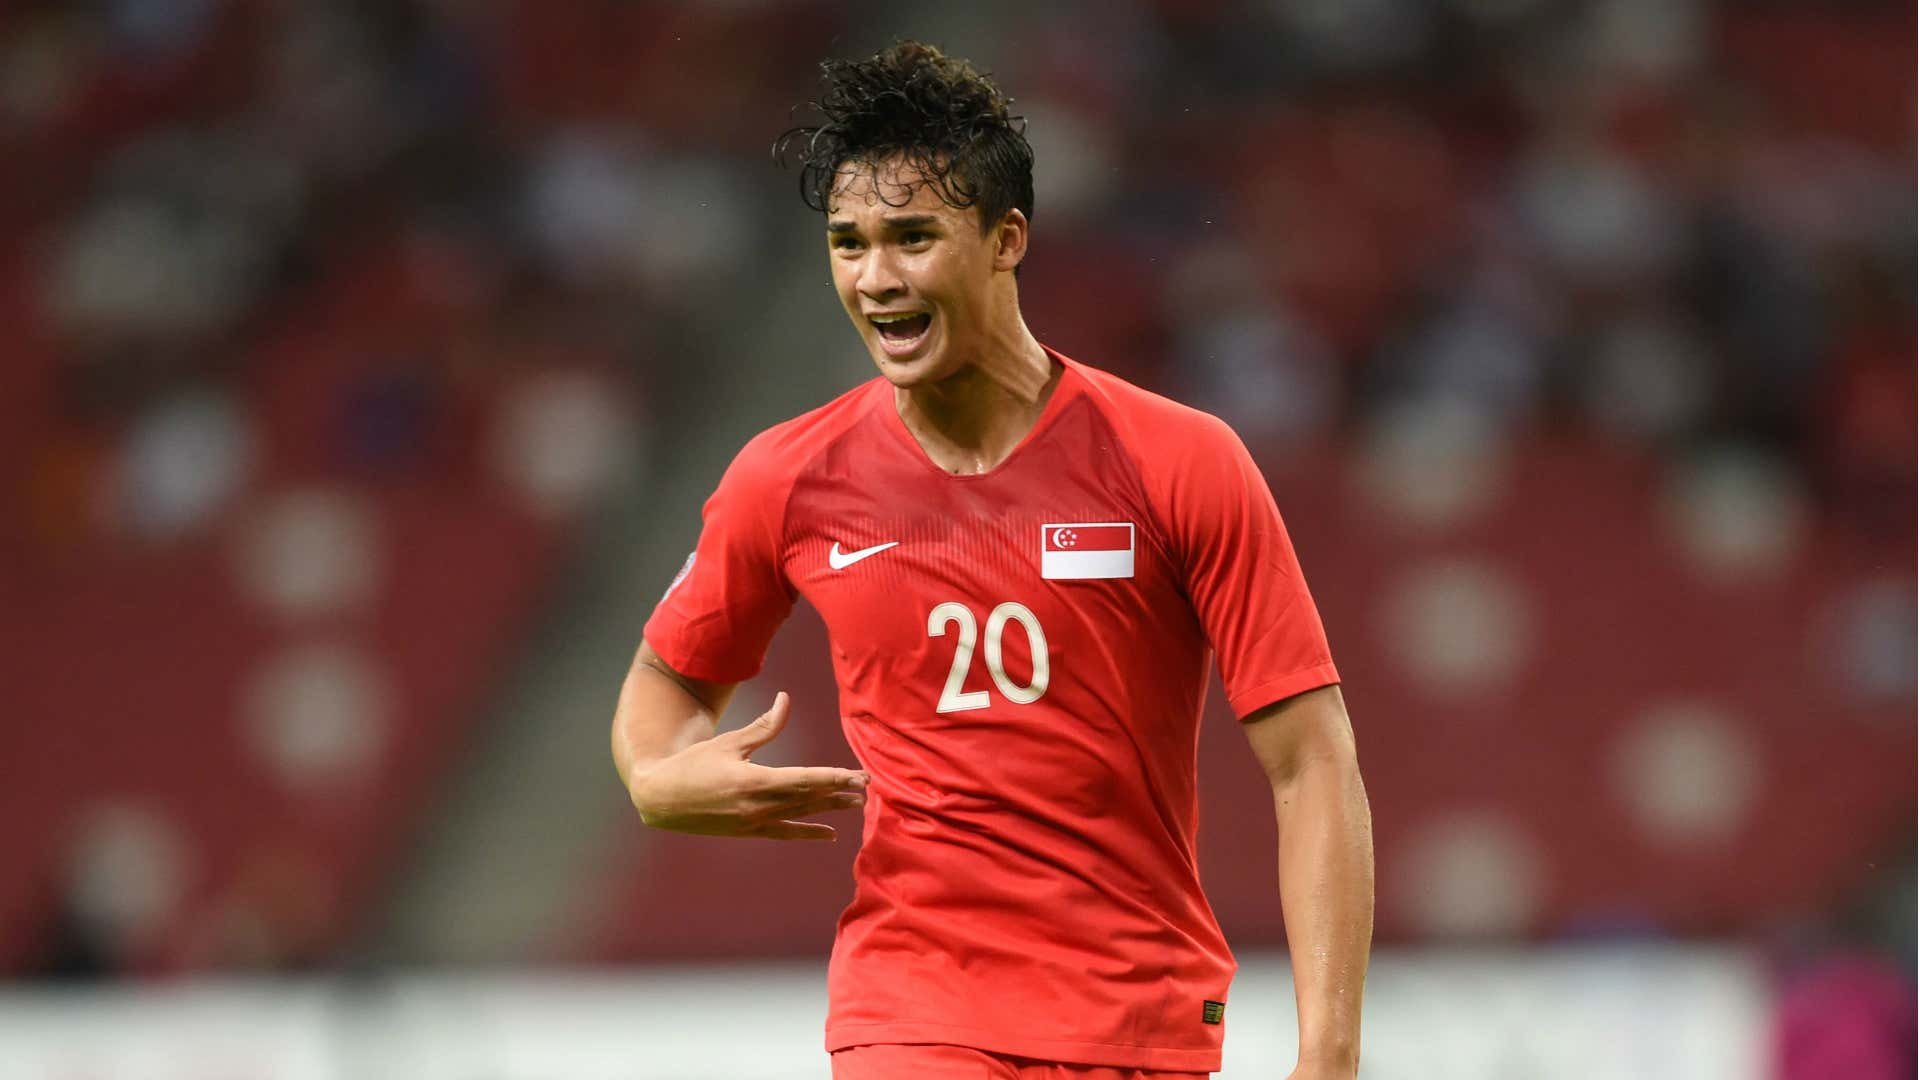 AFF Suzuki Cup: Singapore squad, fixtures, results, table, TV schedule and online streams